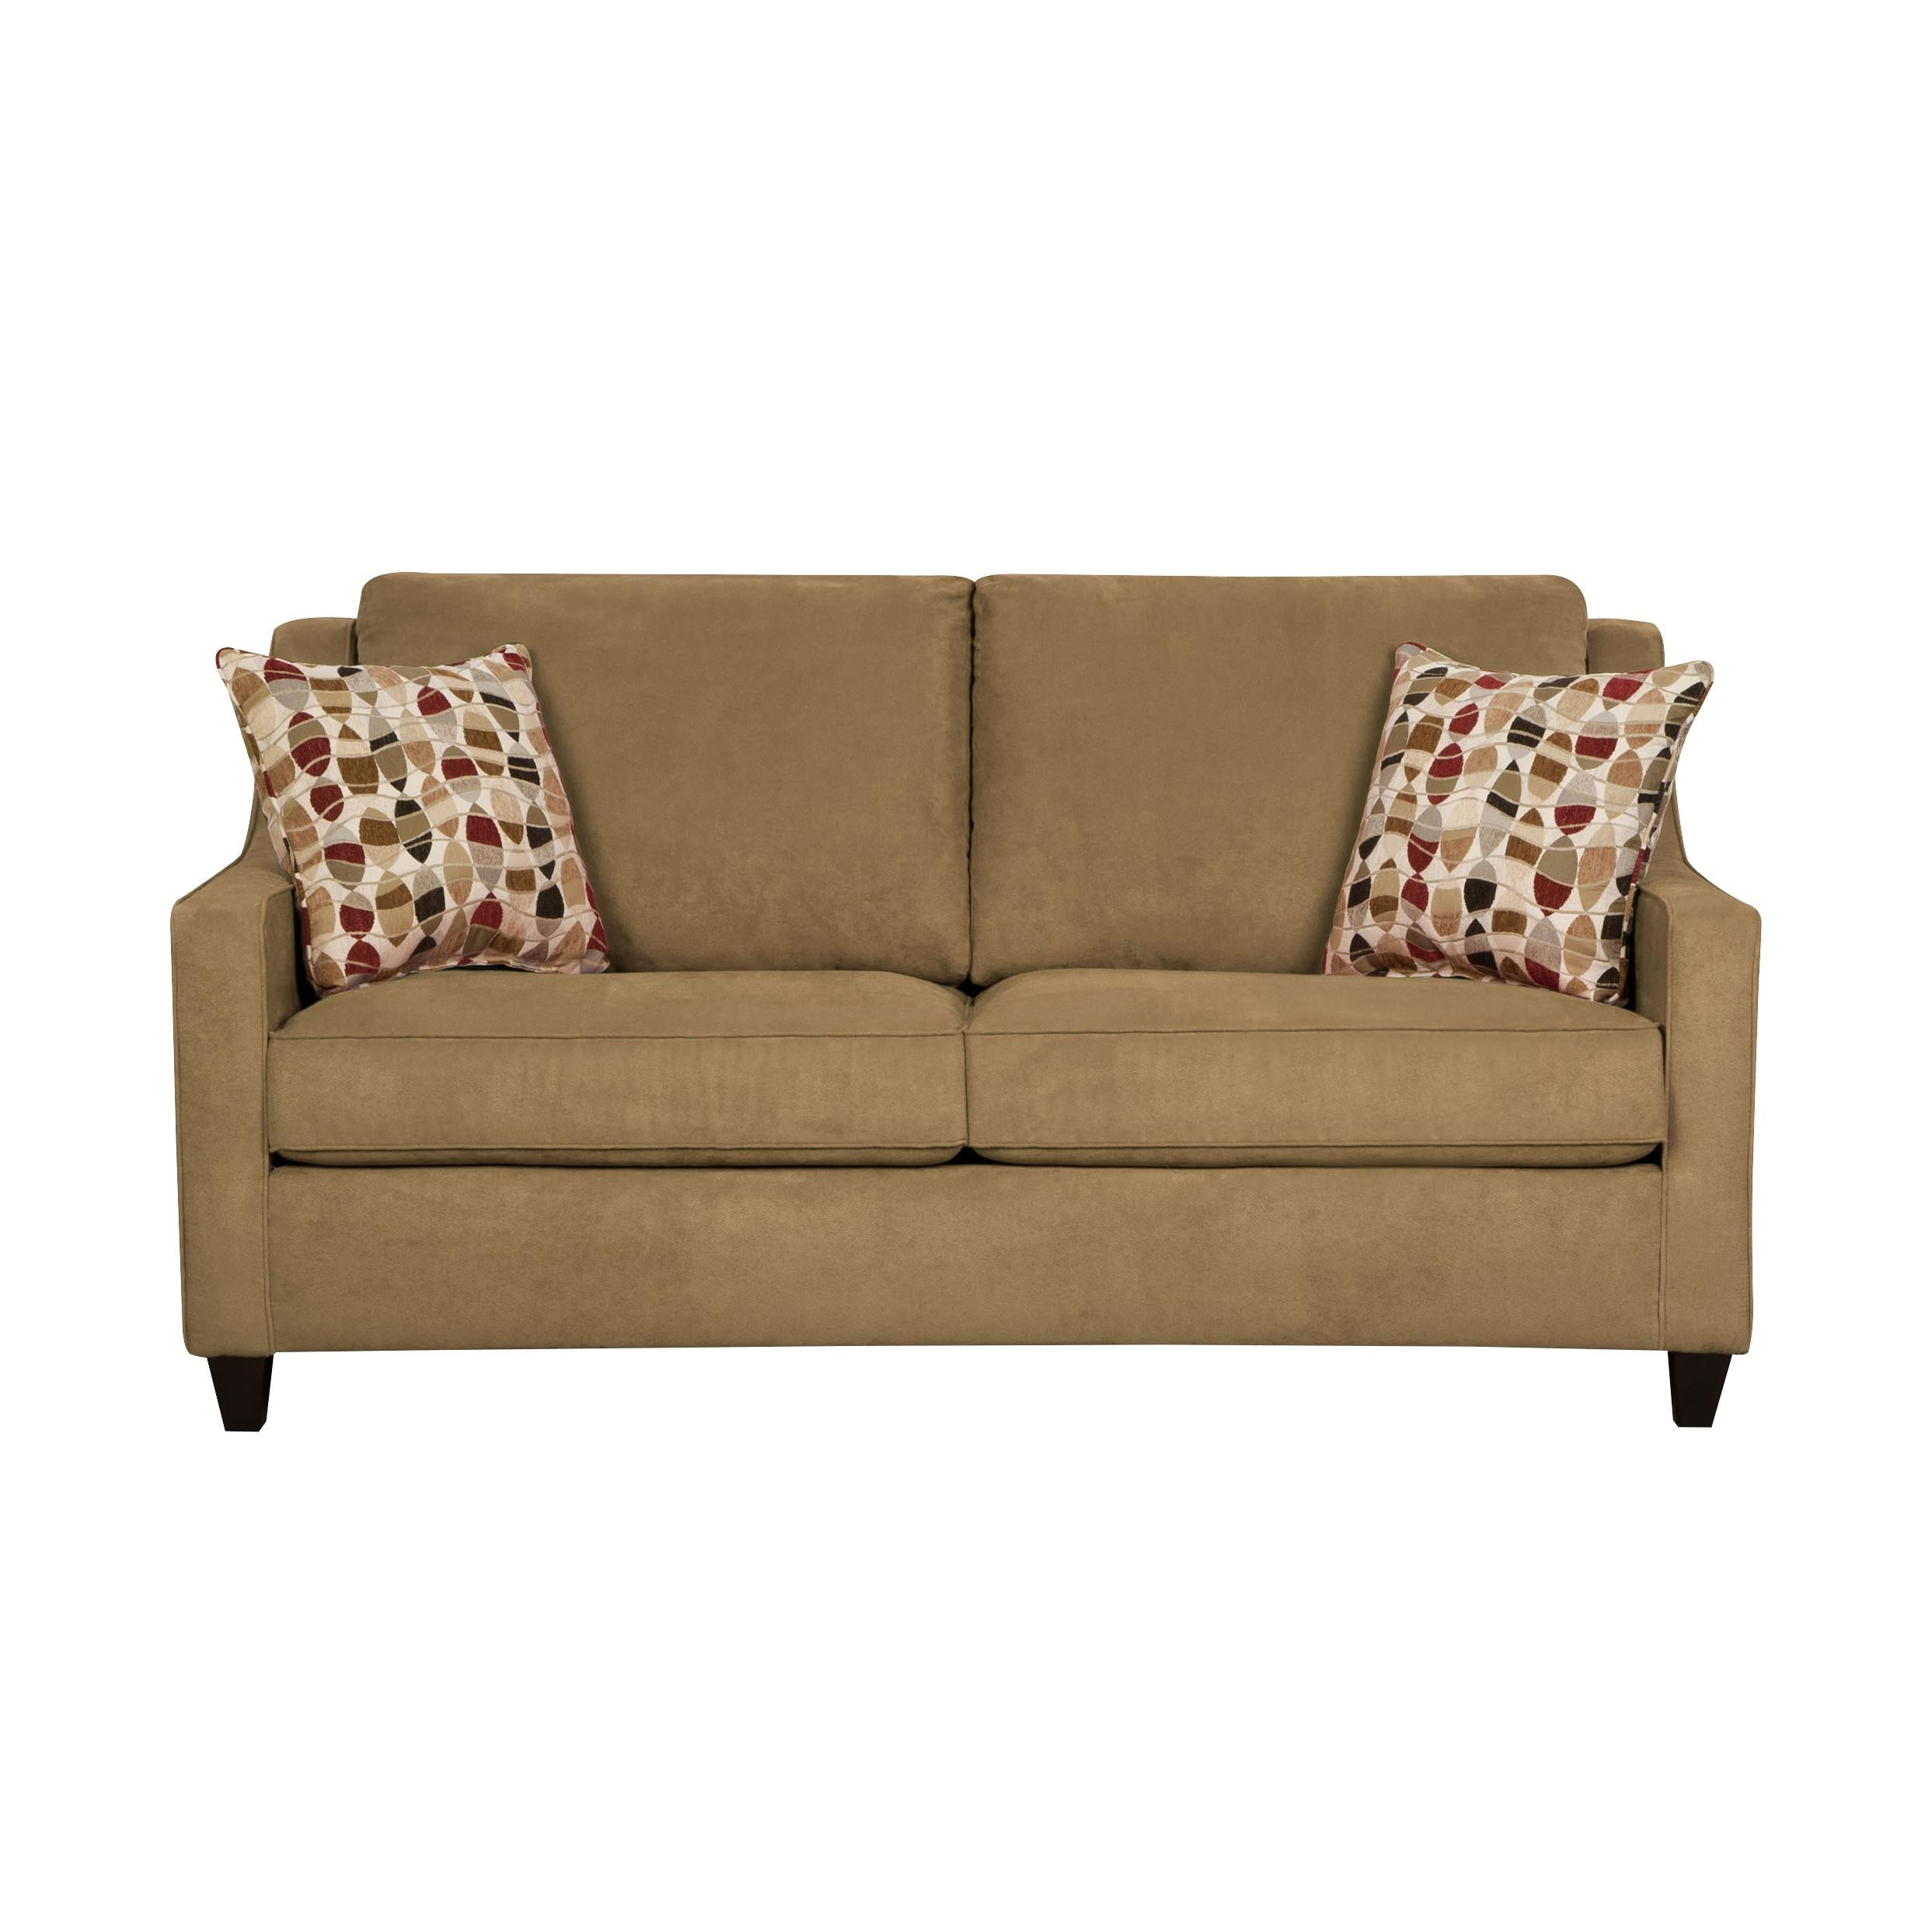 Furniture & Rug: Cozy Loveseat Sleeper For Home Furniture Idea For Loveseat Twin Sleeper Sofas (Image 5 of 20)